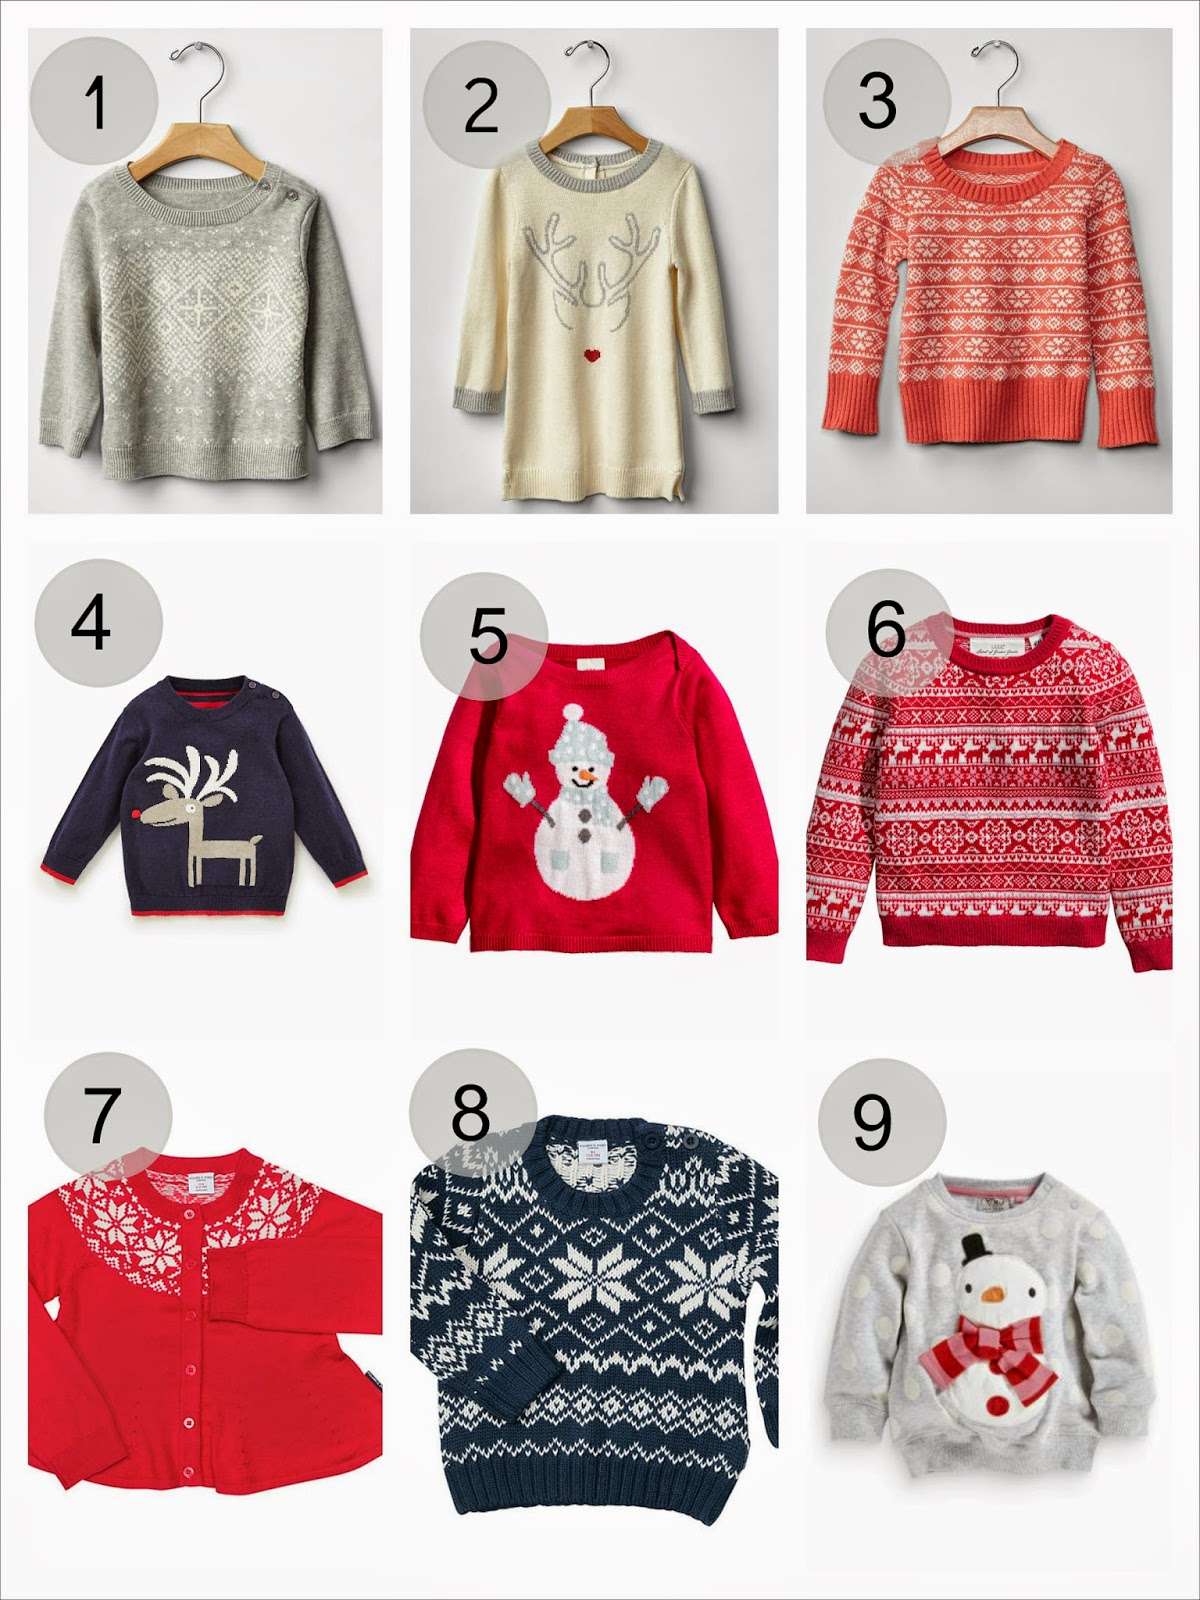 Best Christmas jumpers for babies and toddlers 2014